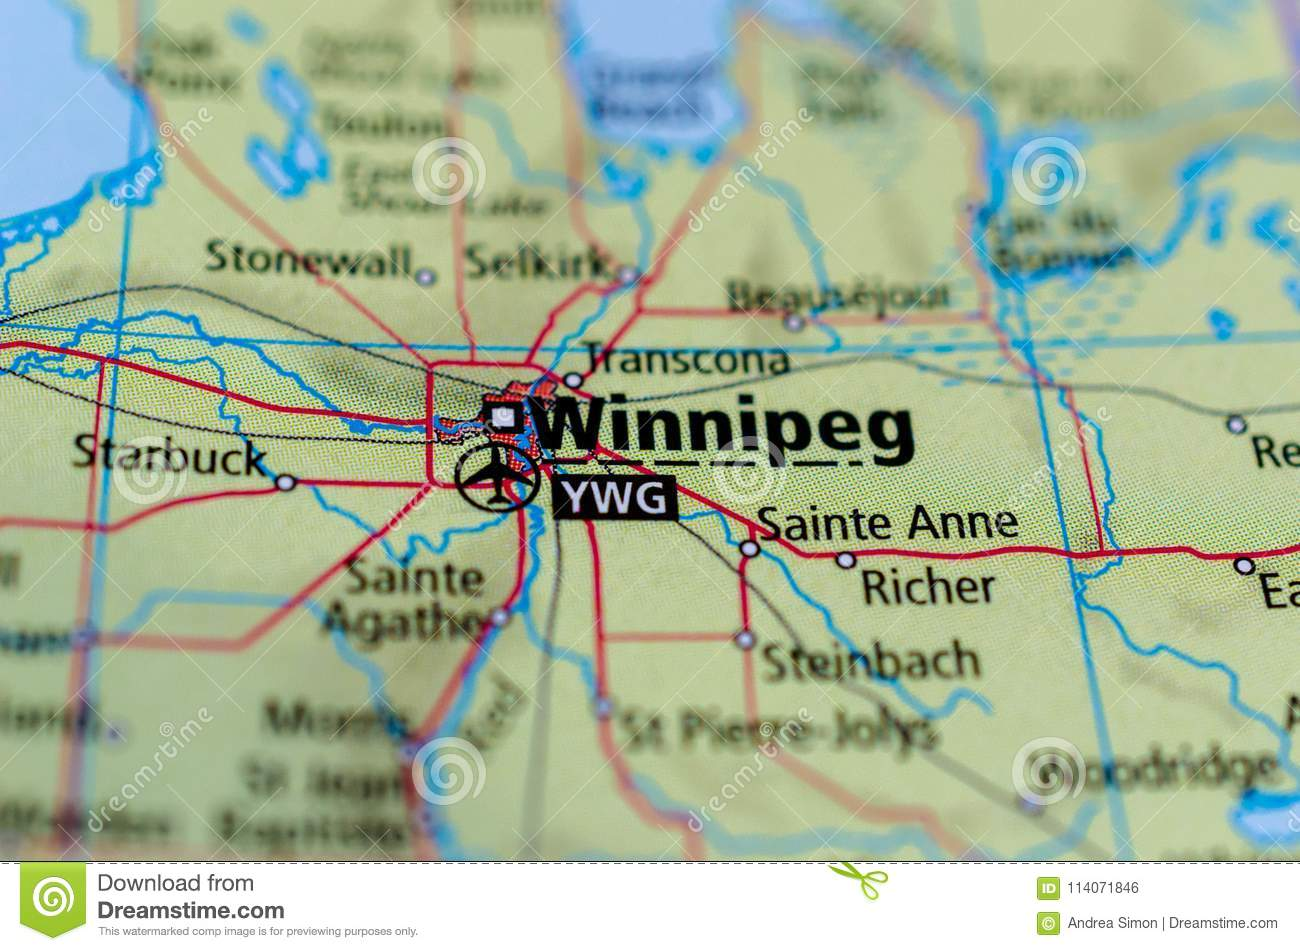 Winnipeg On Map Of Canada.Winnipeg On Map Stock Photo Image Of Populous Continent 114071846